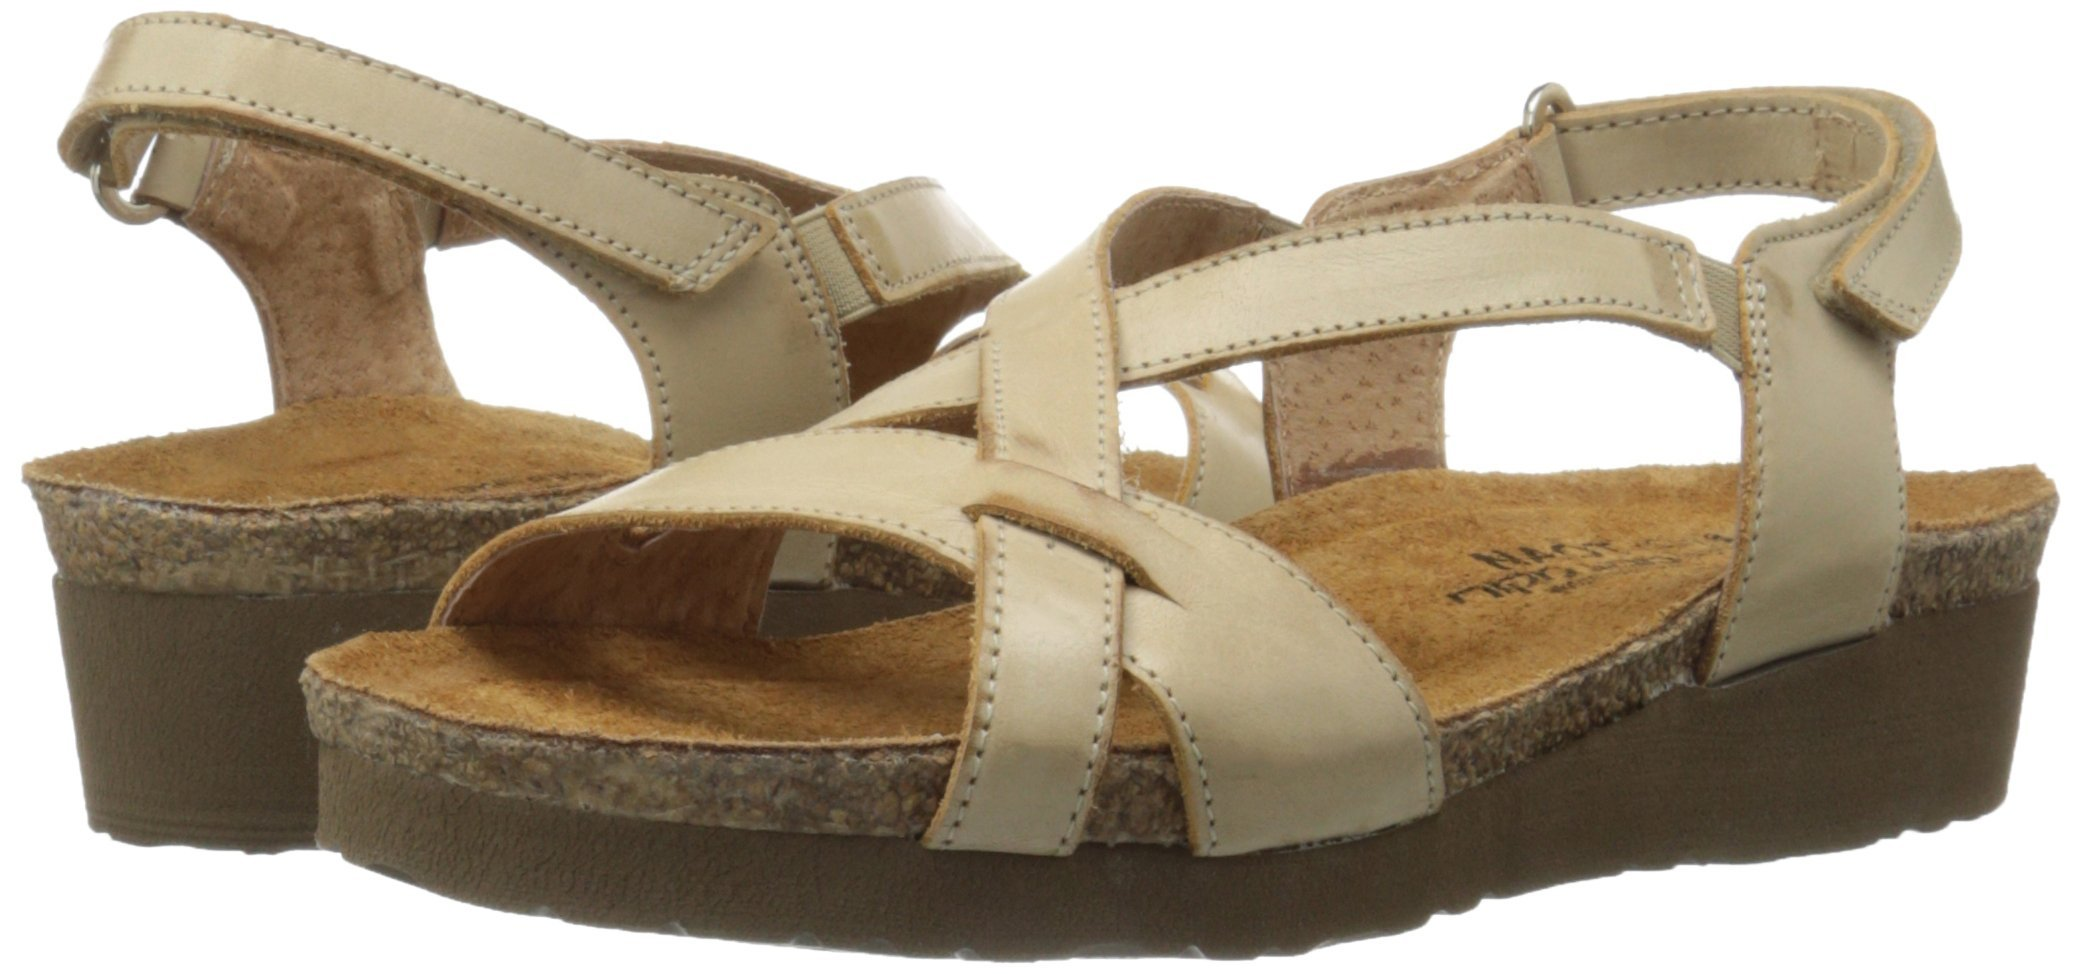 Naot Women's Bernice Wedge Sandal, Biscuit Leather, 35 EU/4.5-5 M US by NAOT (Image #6)